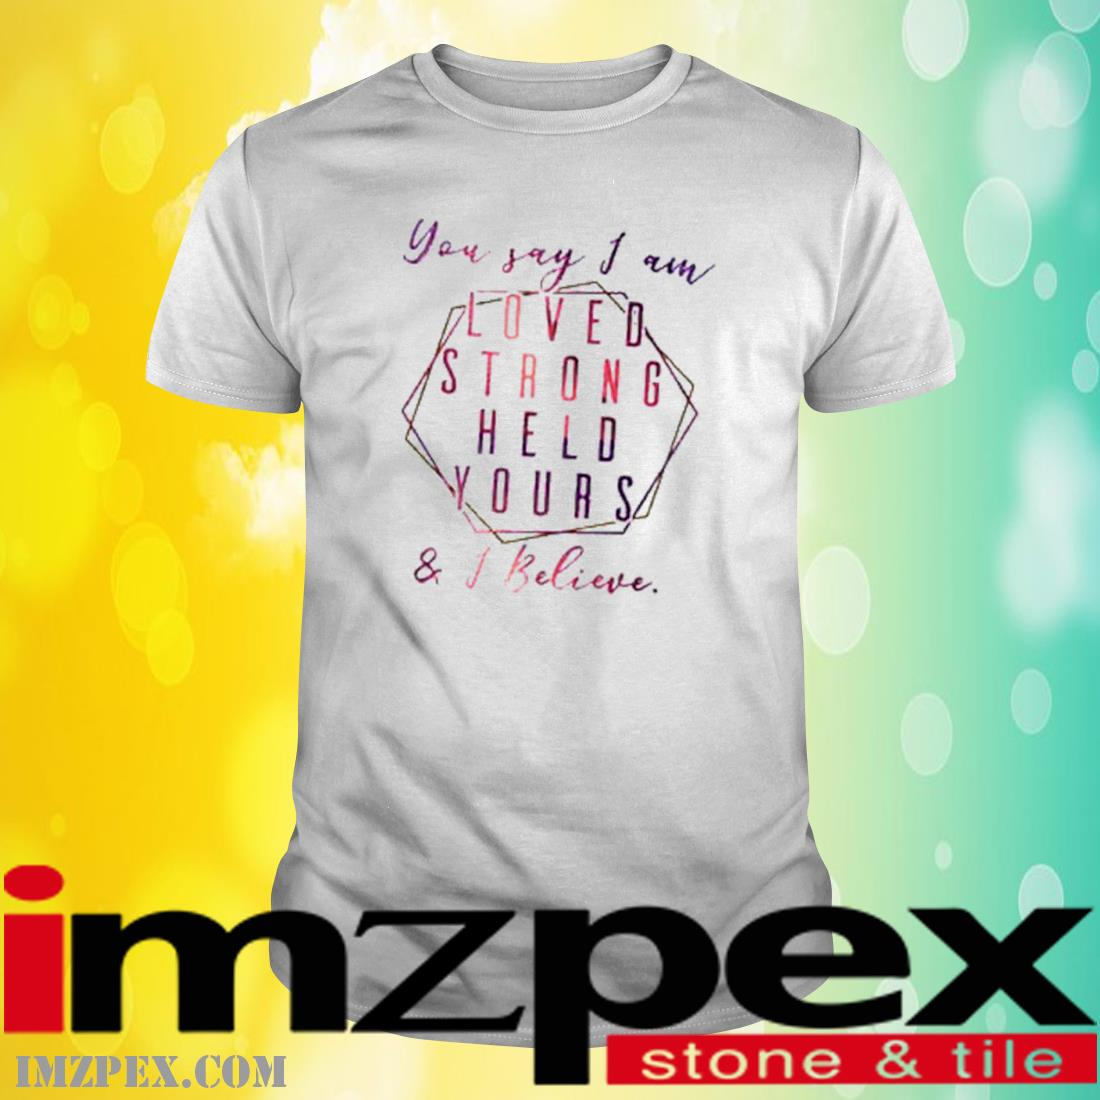 You Say I Am Loved Held Yours I Believe Shirt